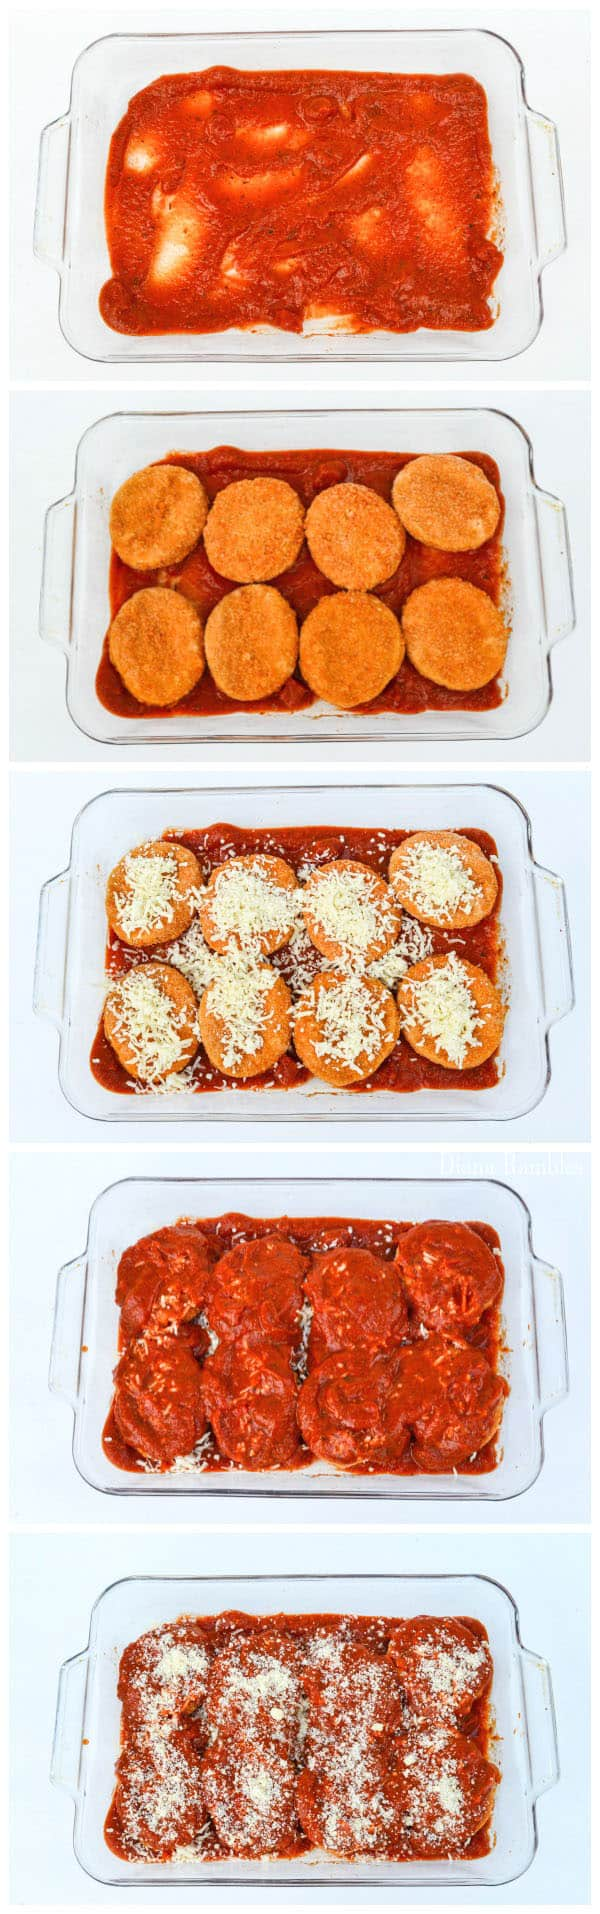 Chicken Patty Parmesan Recipe Directions